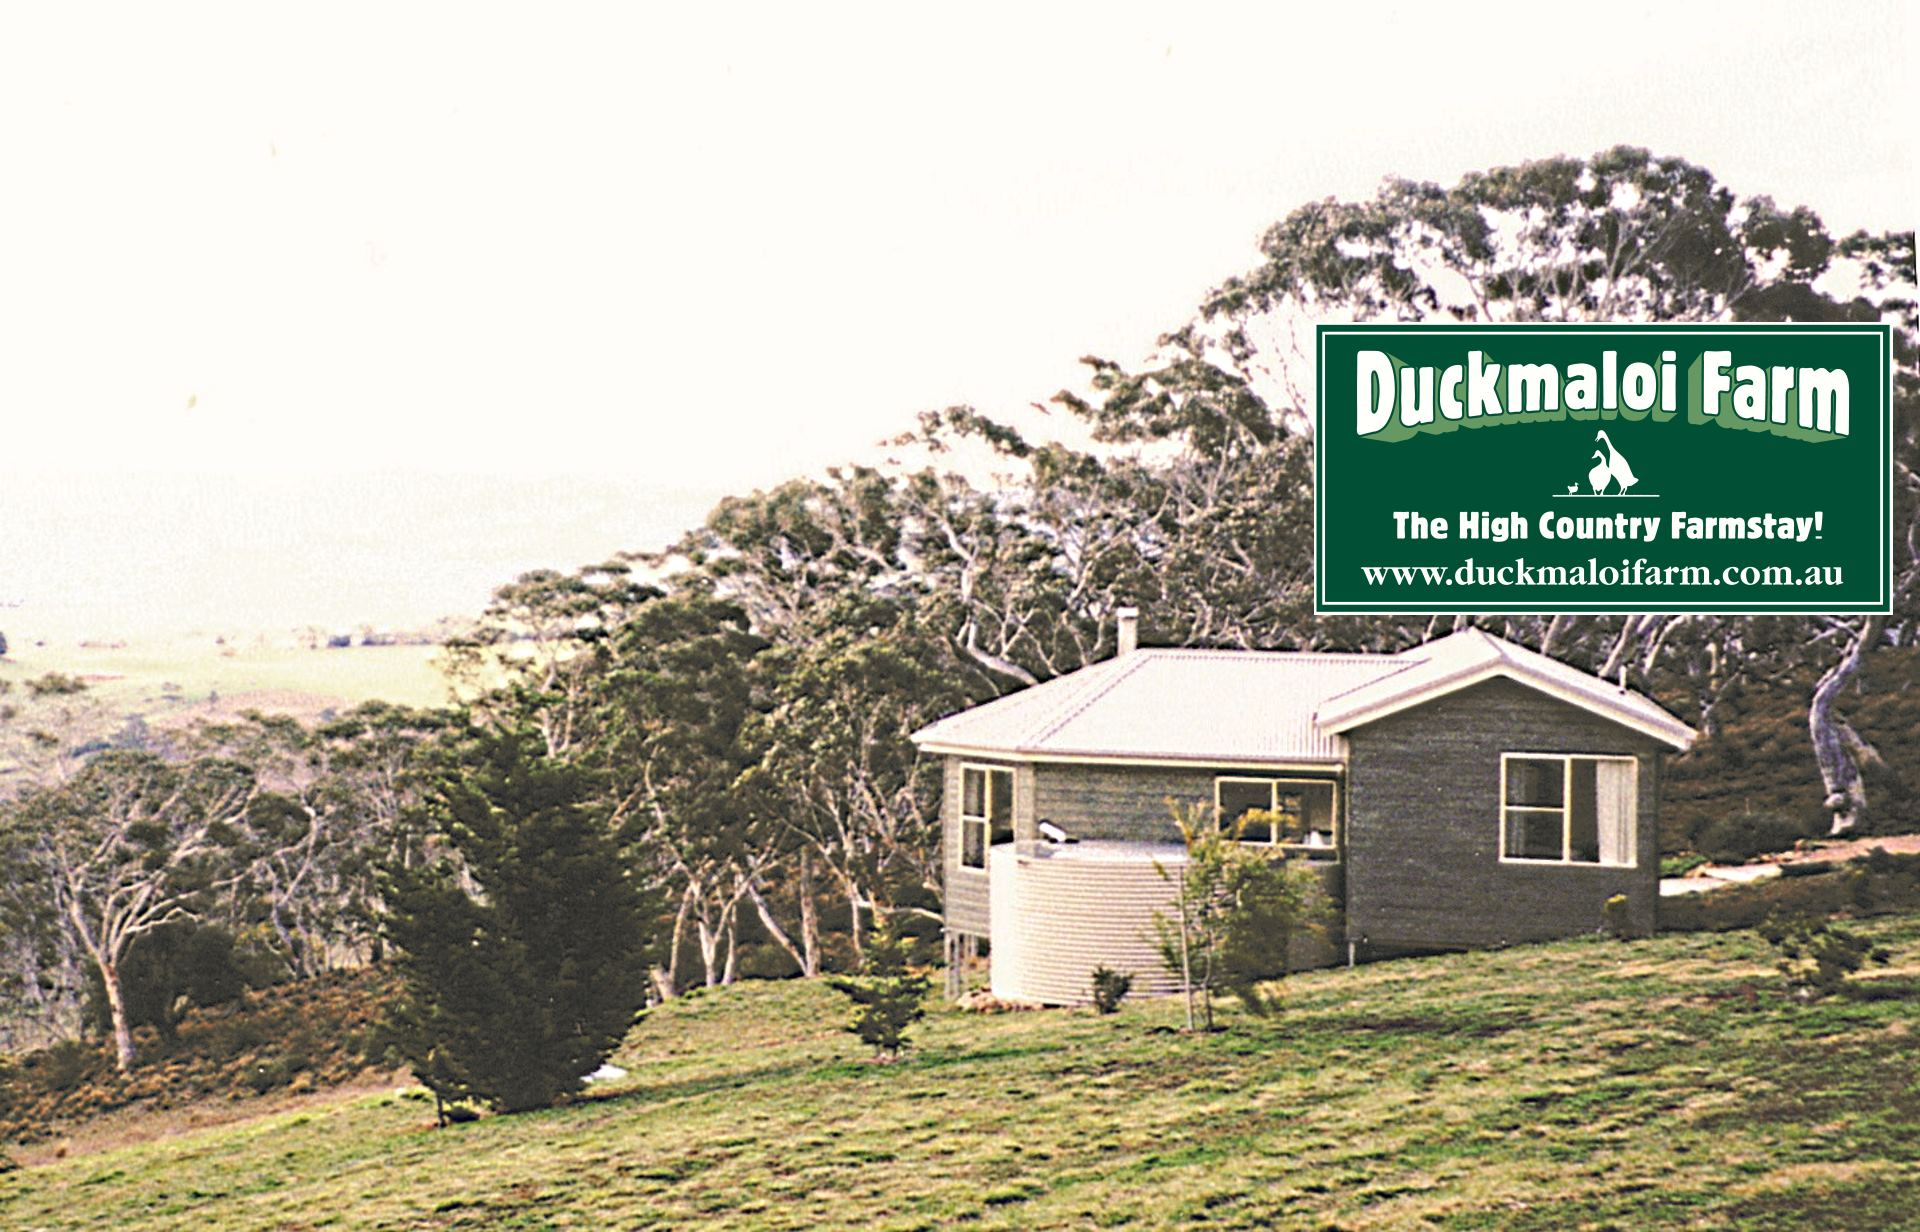 Duckmaloi Farm Experience Is Ideal For Young Families